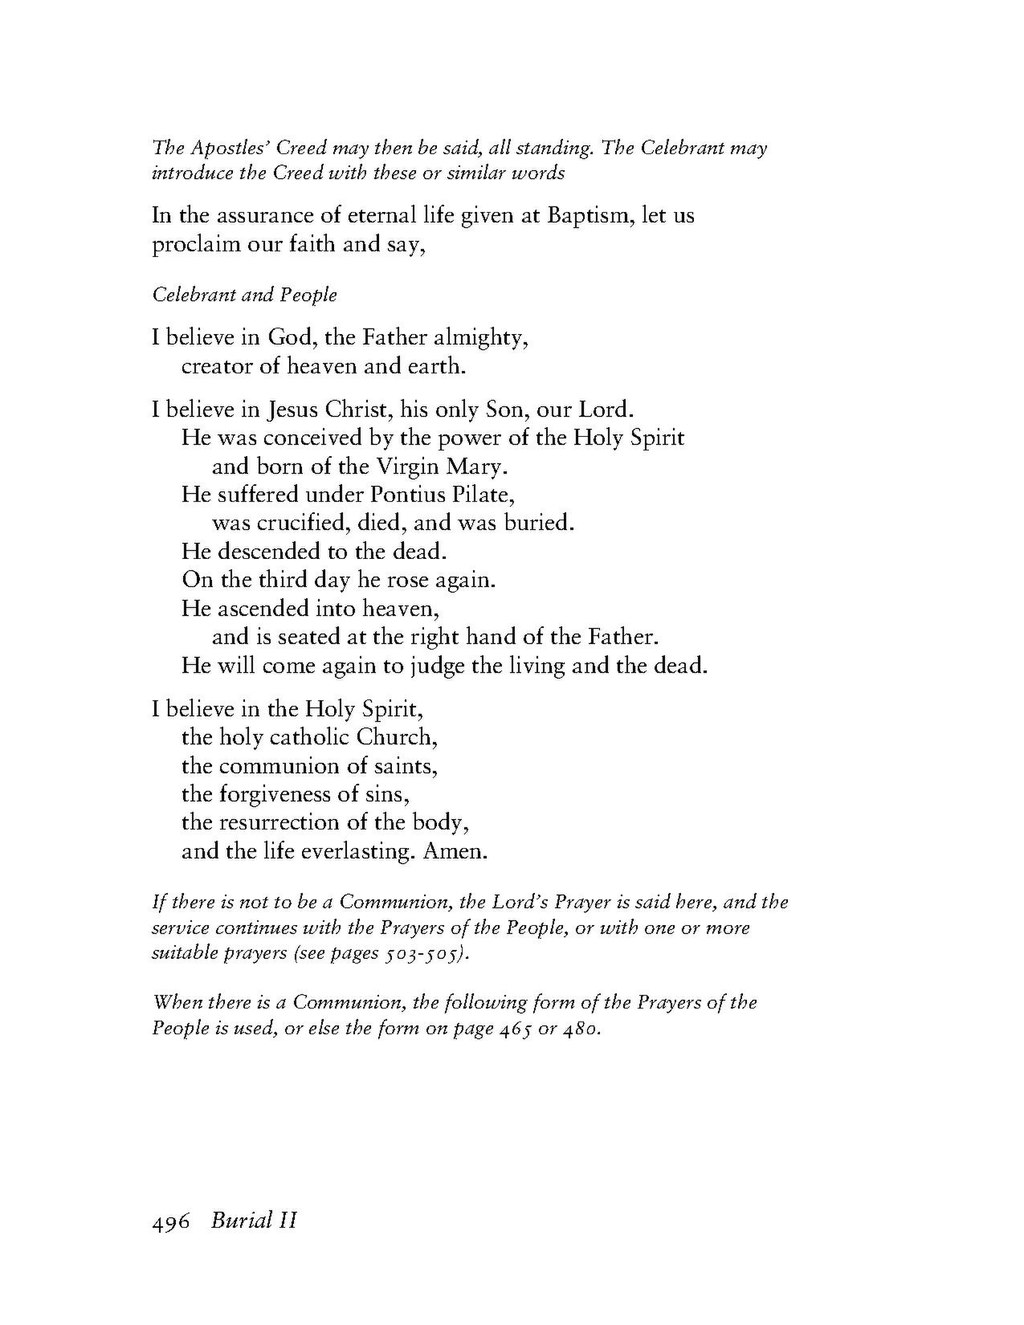 page book of common prayer tec 1979 pdf 496 wikisource the